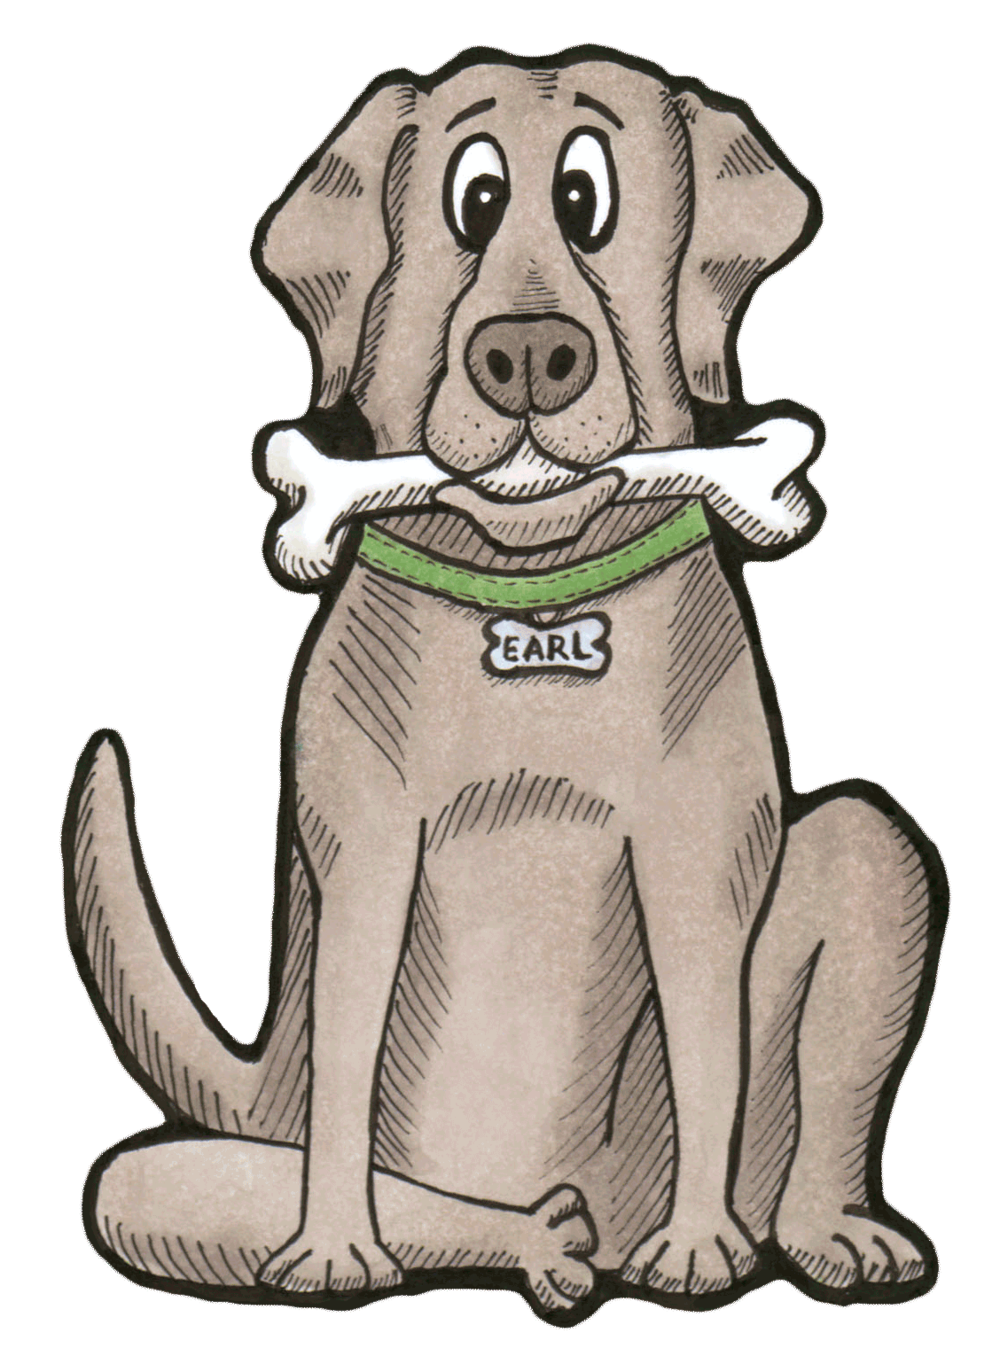 Earl-the-Dog-1-copy.png